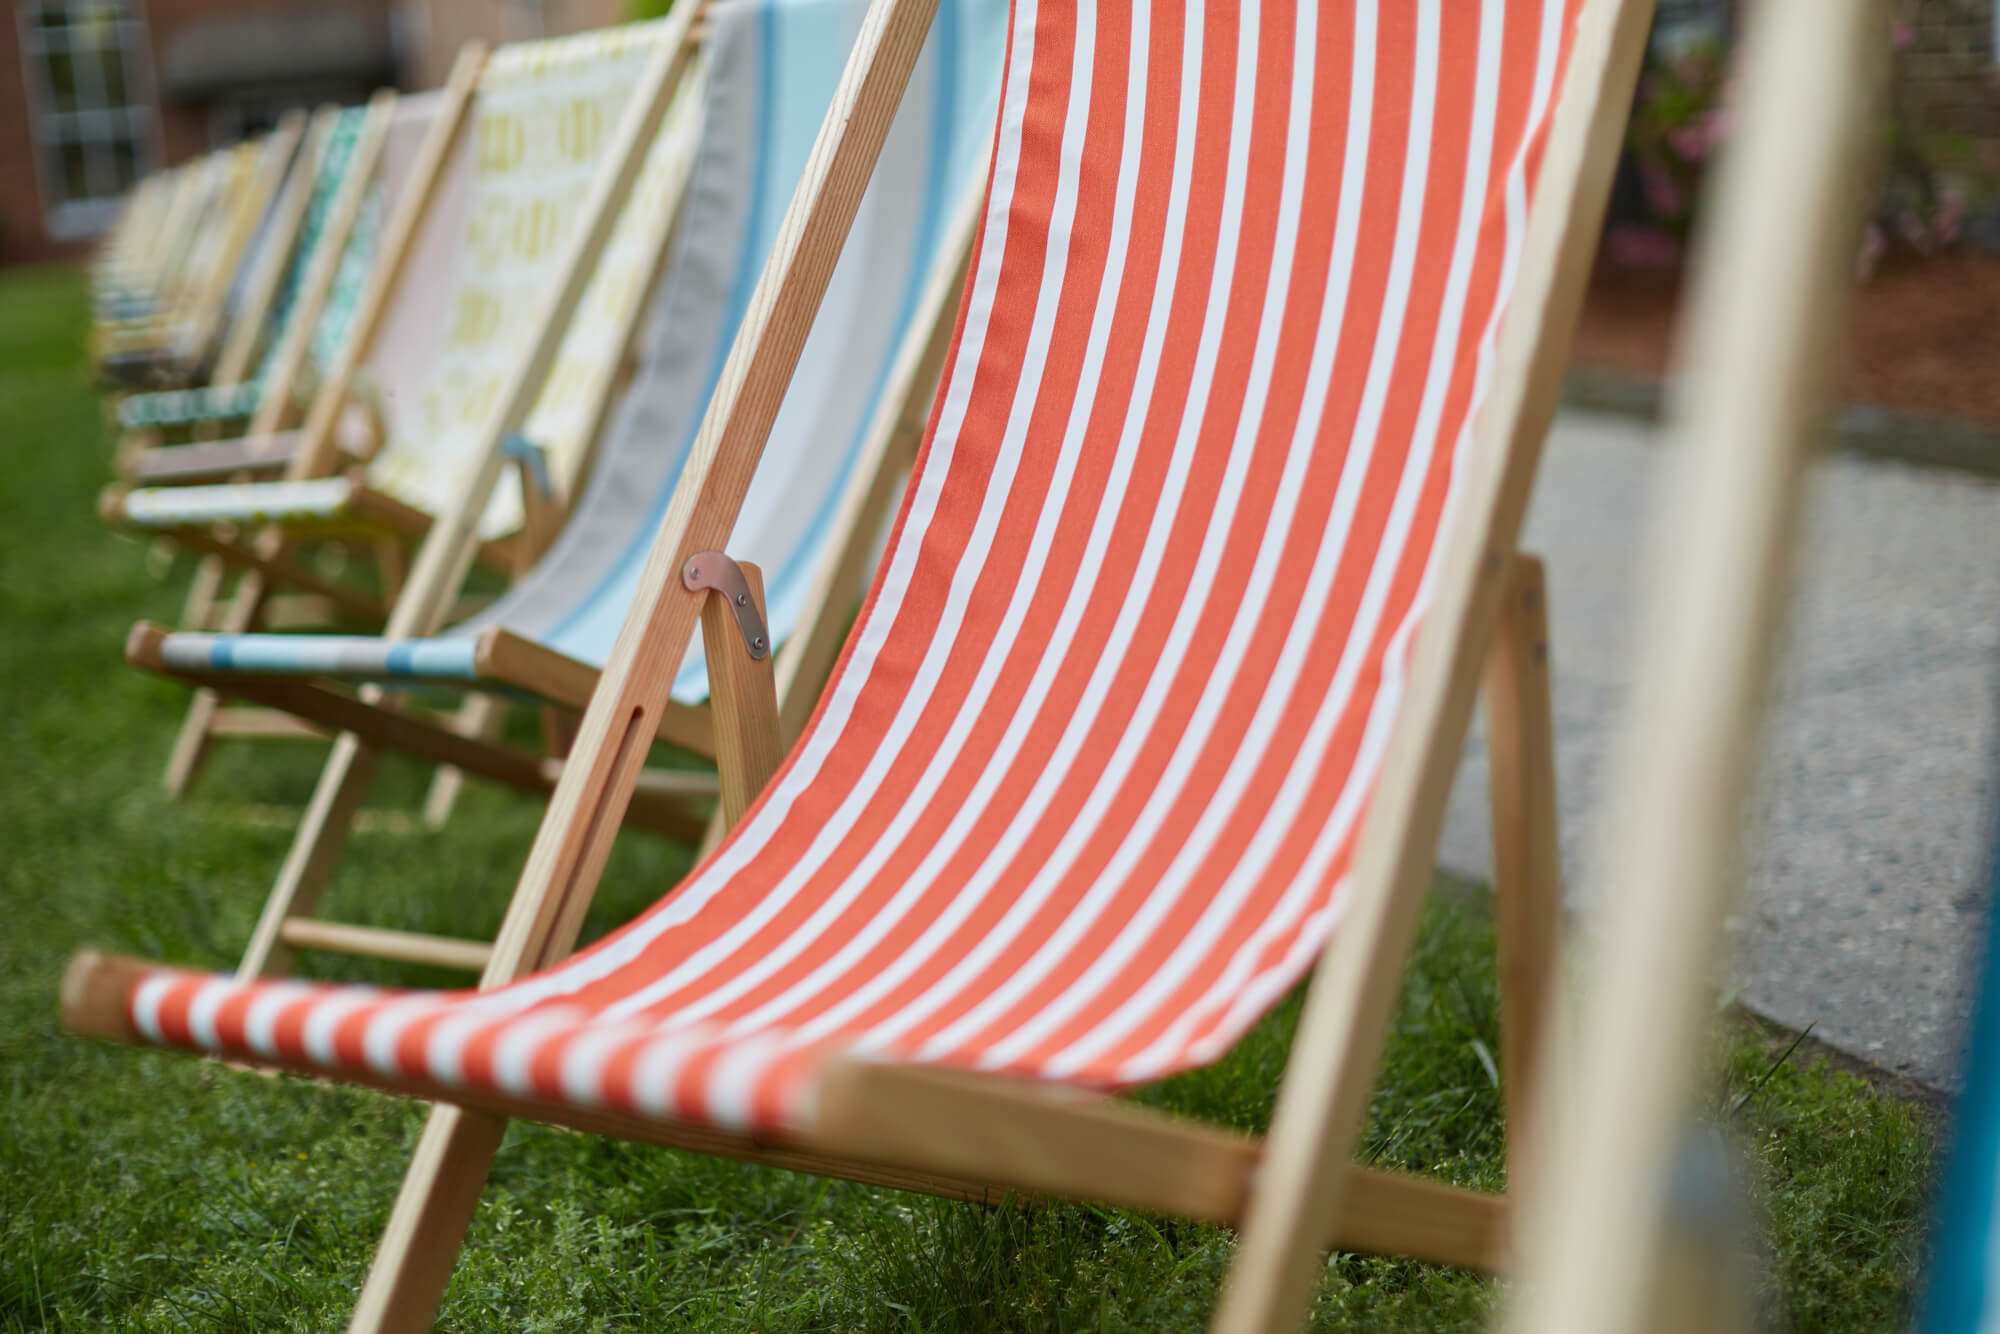 Cabana chair with red and white striped fabric